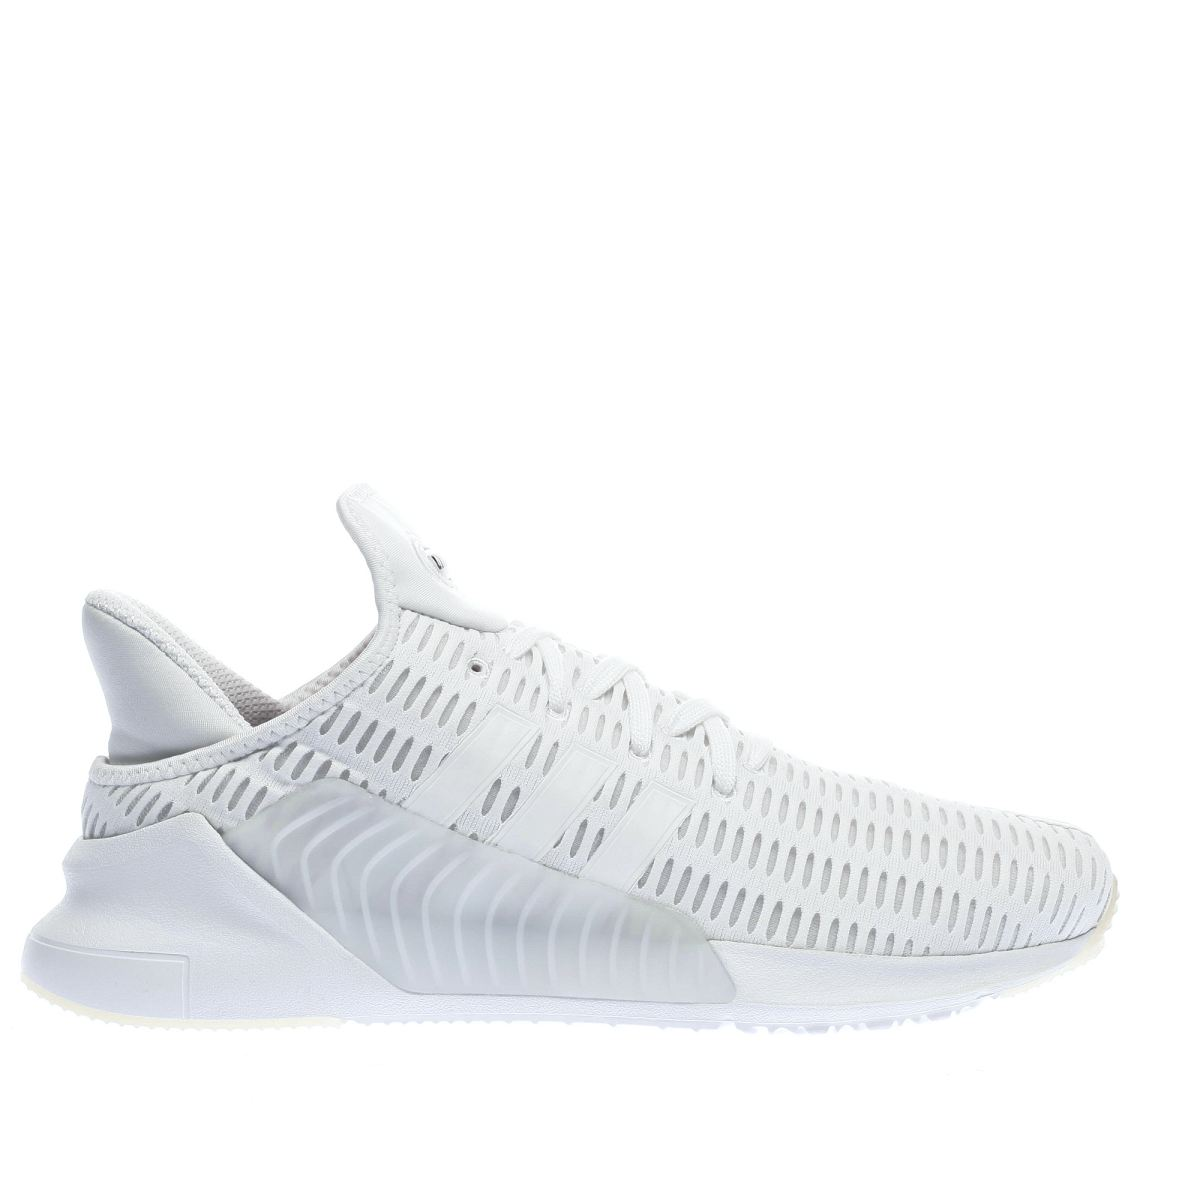 adidas white climacool 02.17 trainers